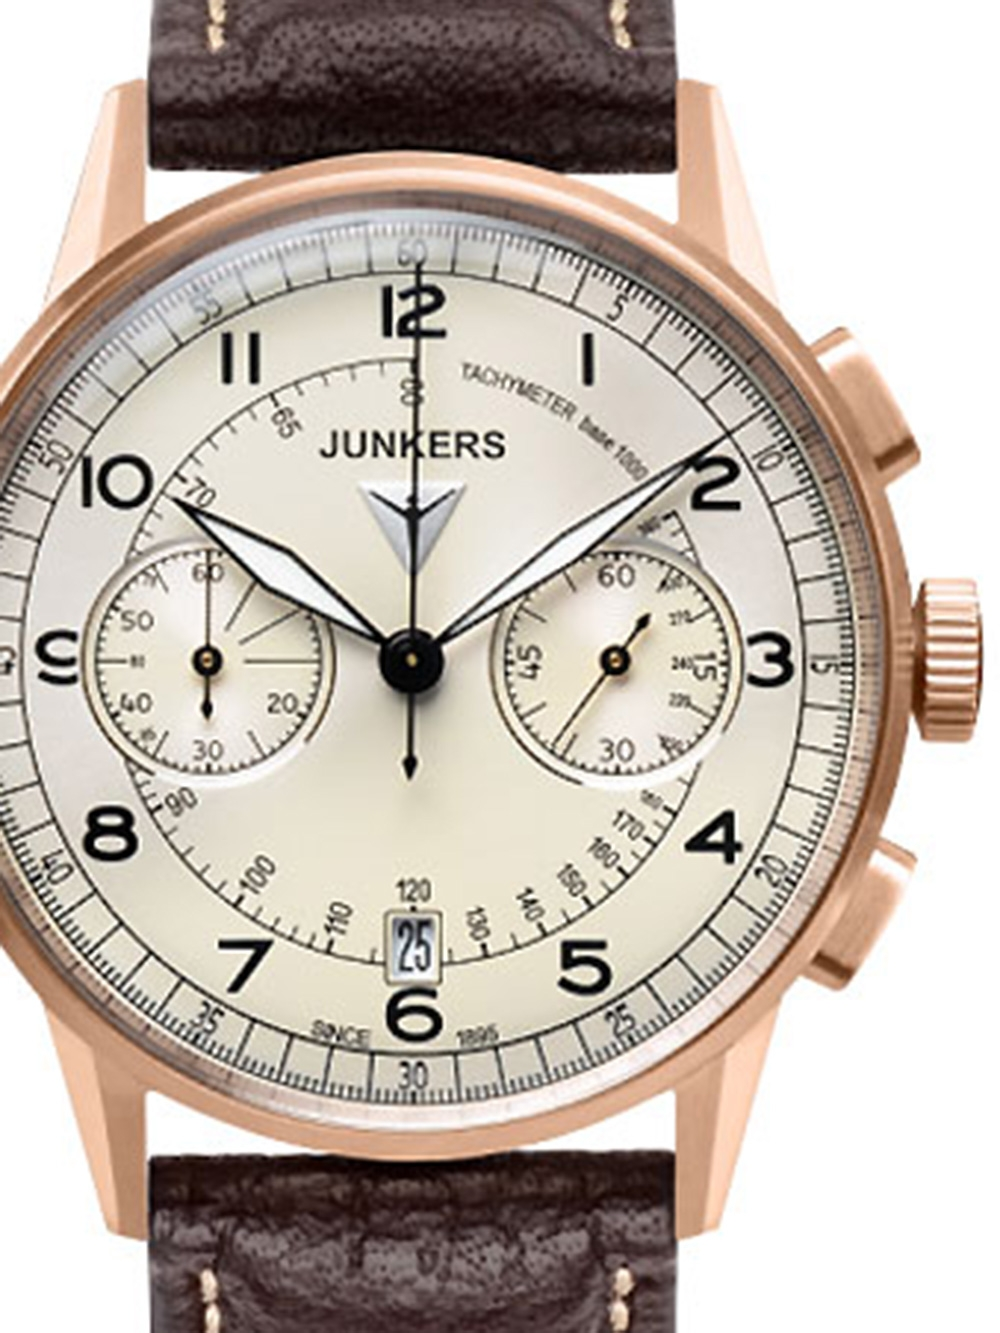 Junkers G38 6972 1 Chronograph gold braun 42 mm 100M